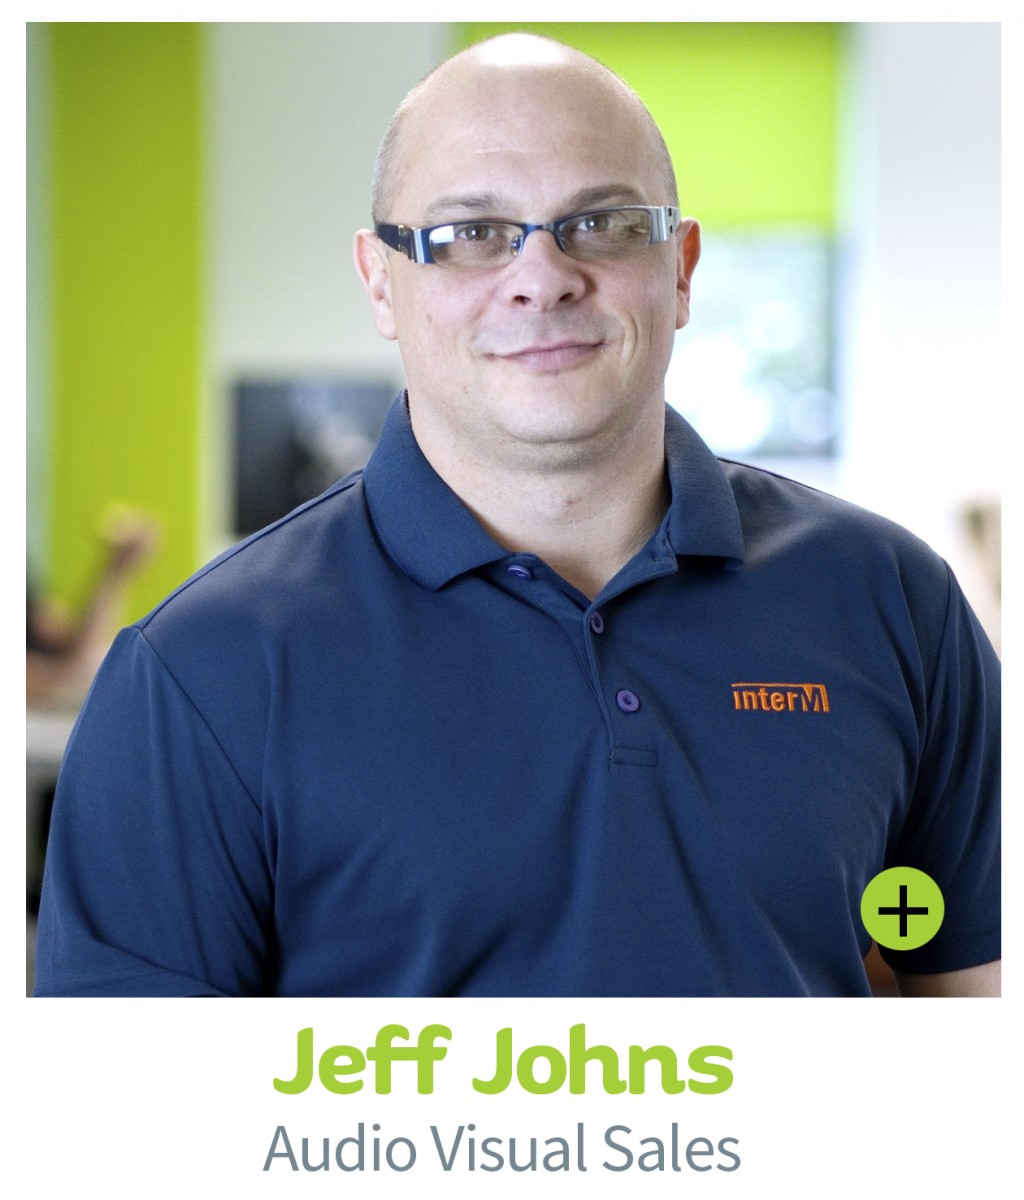 Jeff Johns, CIE AV Solutions